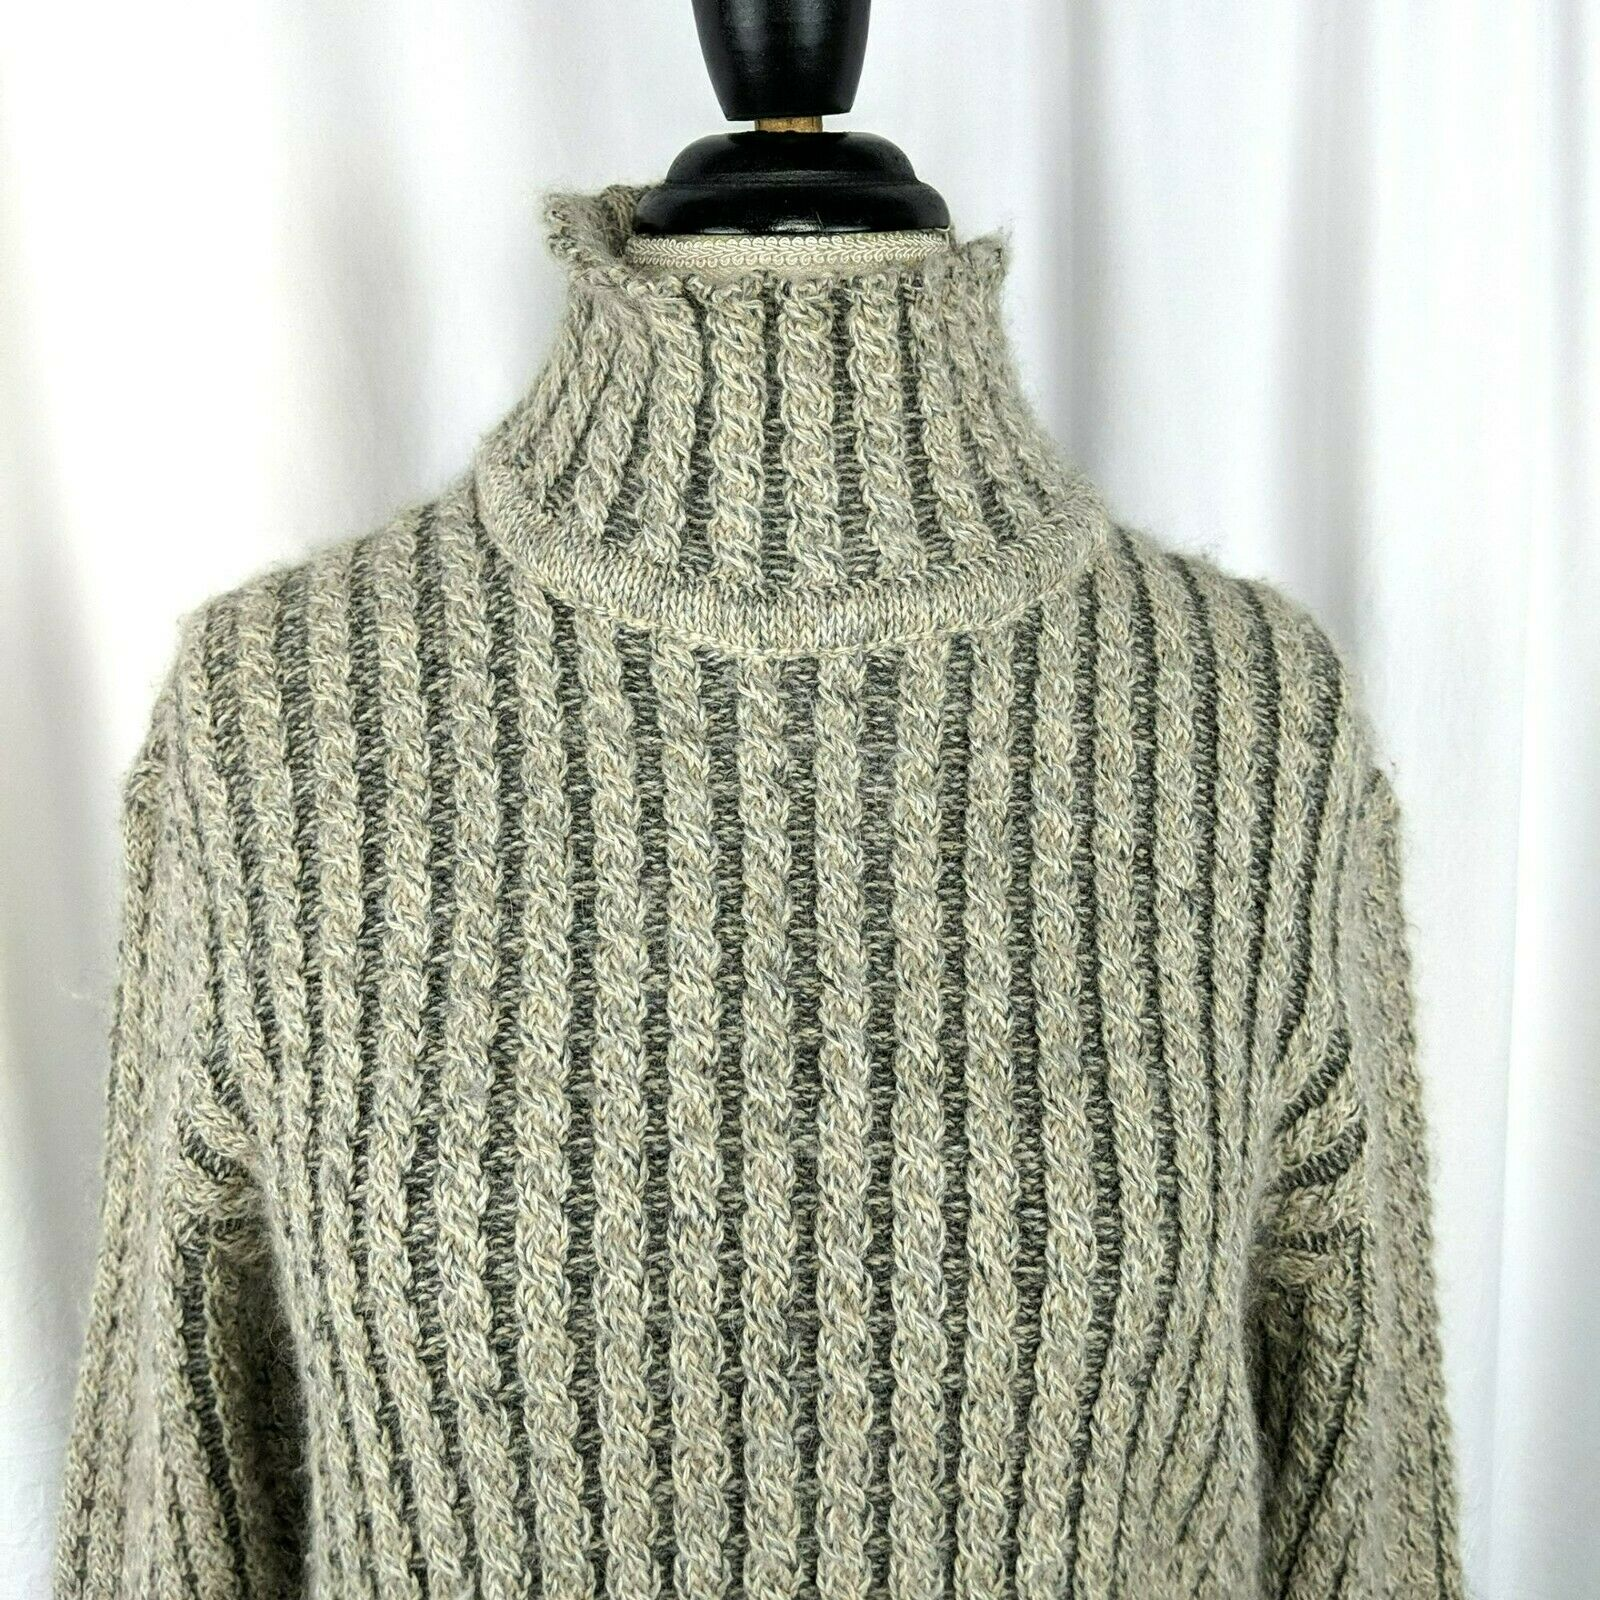 Inis Meain Gray Beige Alpaca Cable Knit Sweater S… - image 2